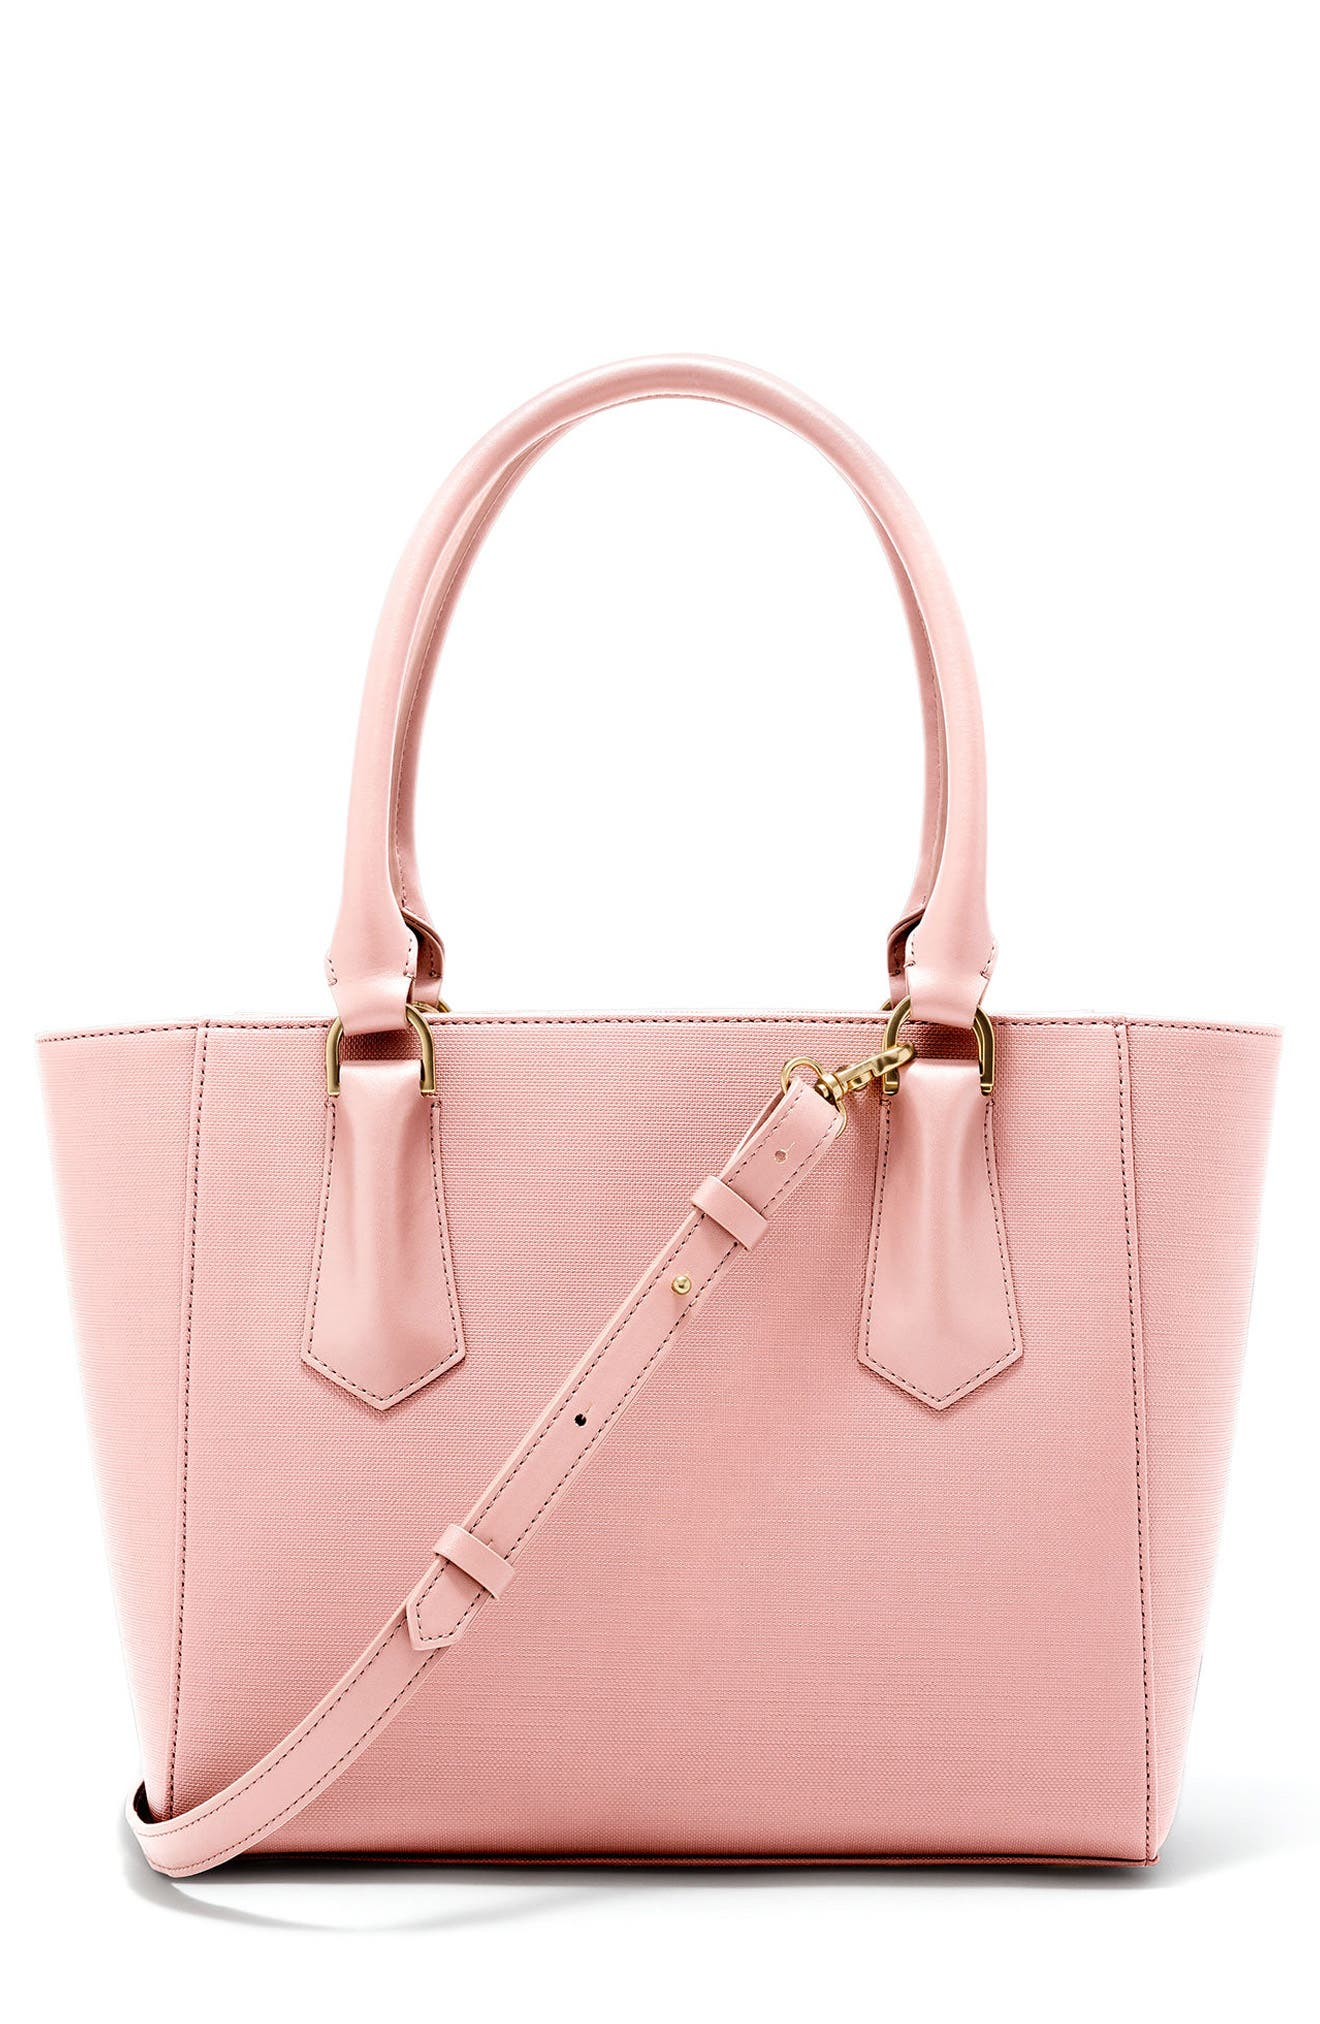 Signature Midi Coated Canvas Tote - Pink, Lychee